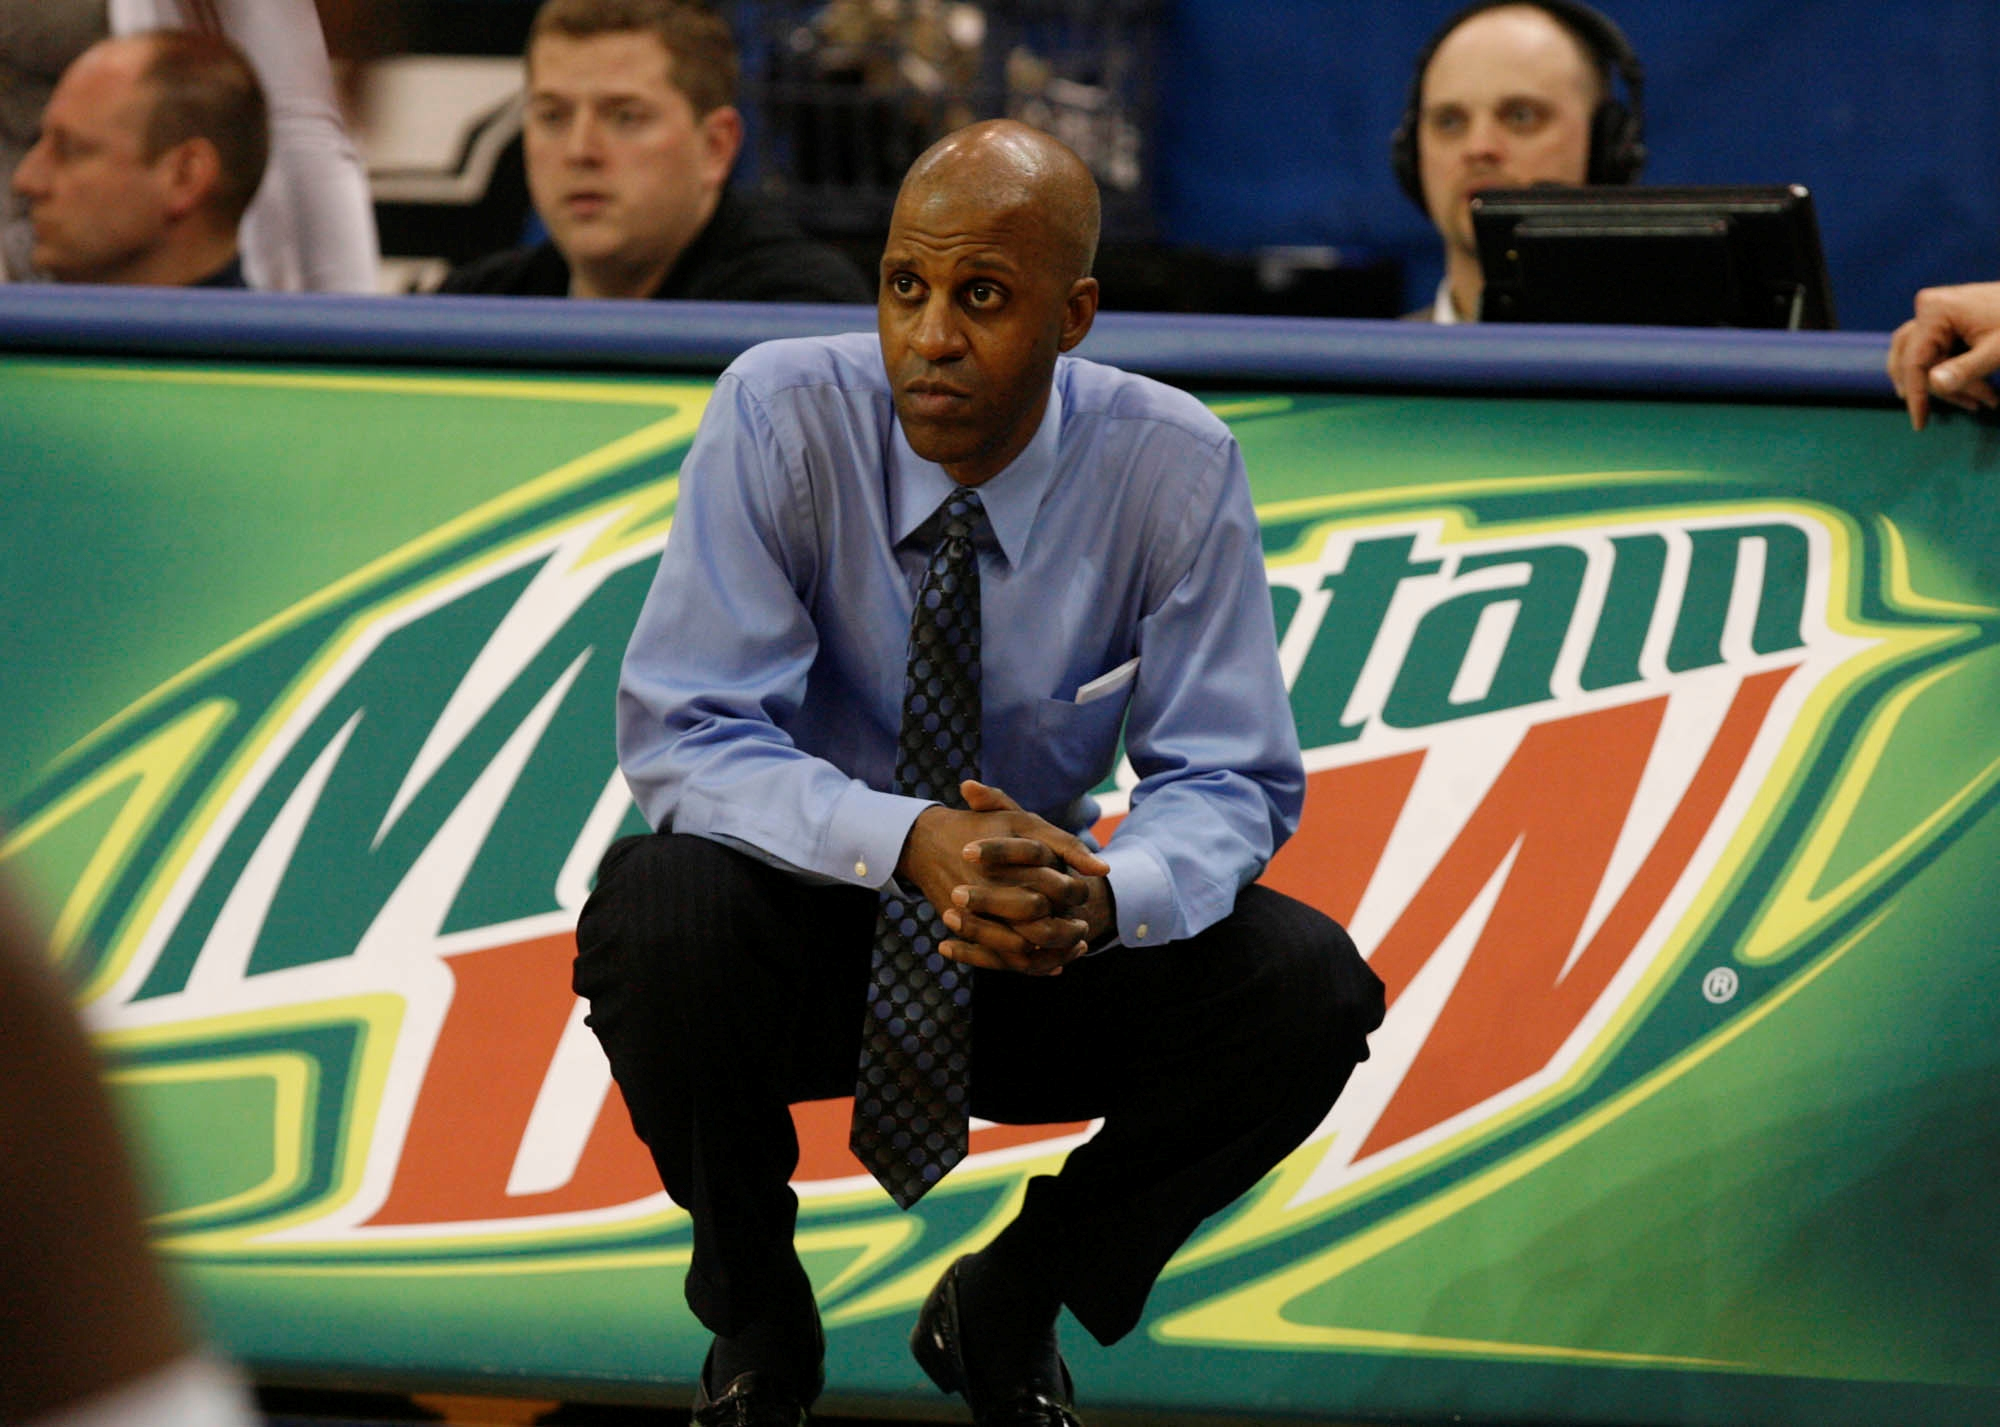 Former UB head coach Reggie Witherspoon has had some of his former players, assistants, even team managers shine elsewhere.